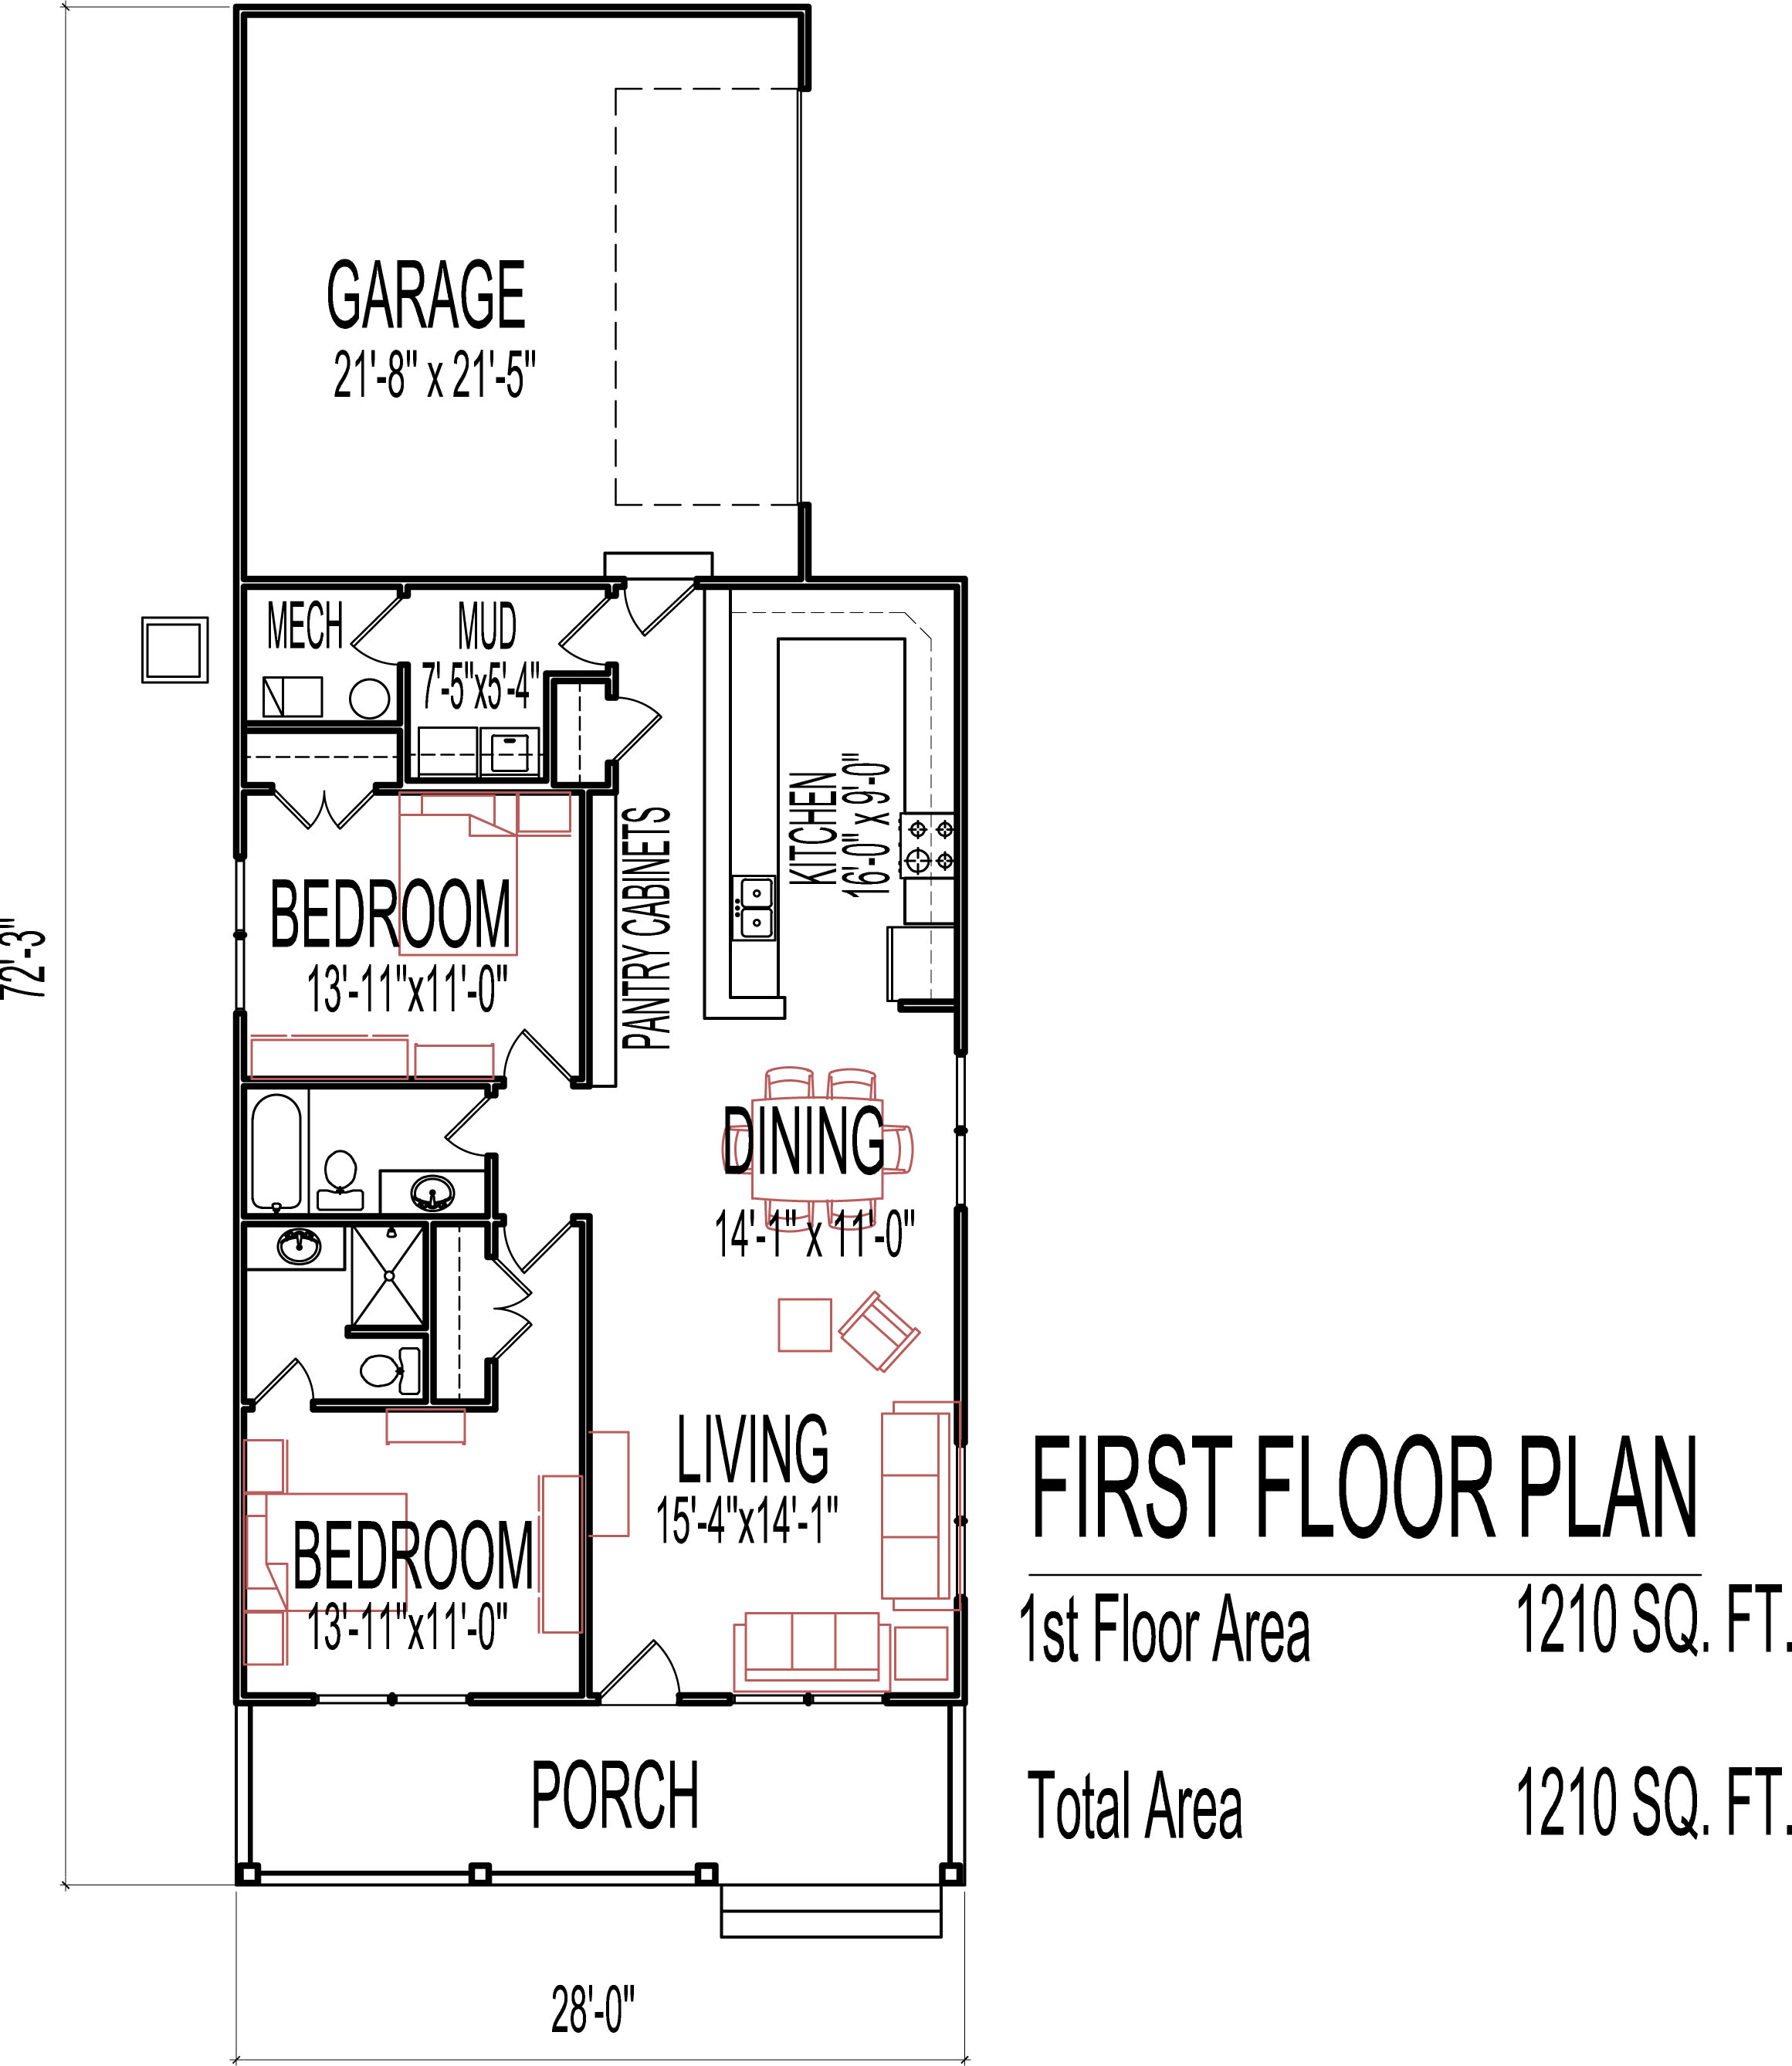 Small Two Bedroom House Plans Low Cost 1200 Sq Ft one Story ...